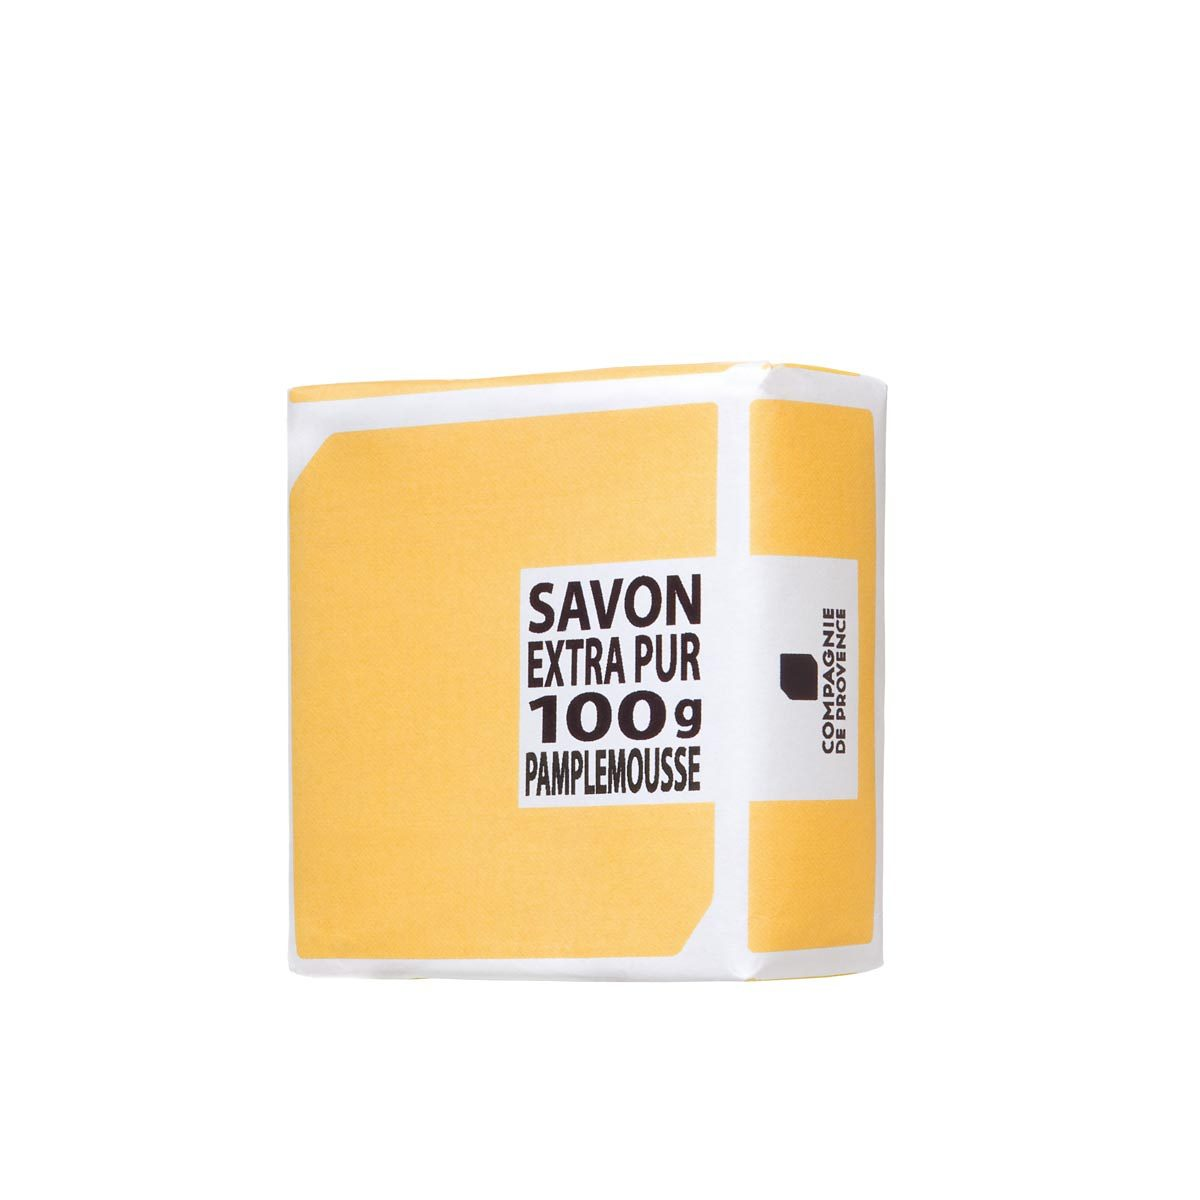 COMPAGNIE DE PROVENCE Compagnie de Provence Pampelmuse Seife 100g EXTRA PUR